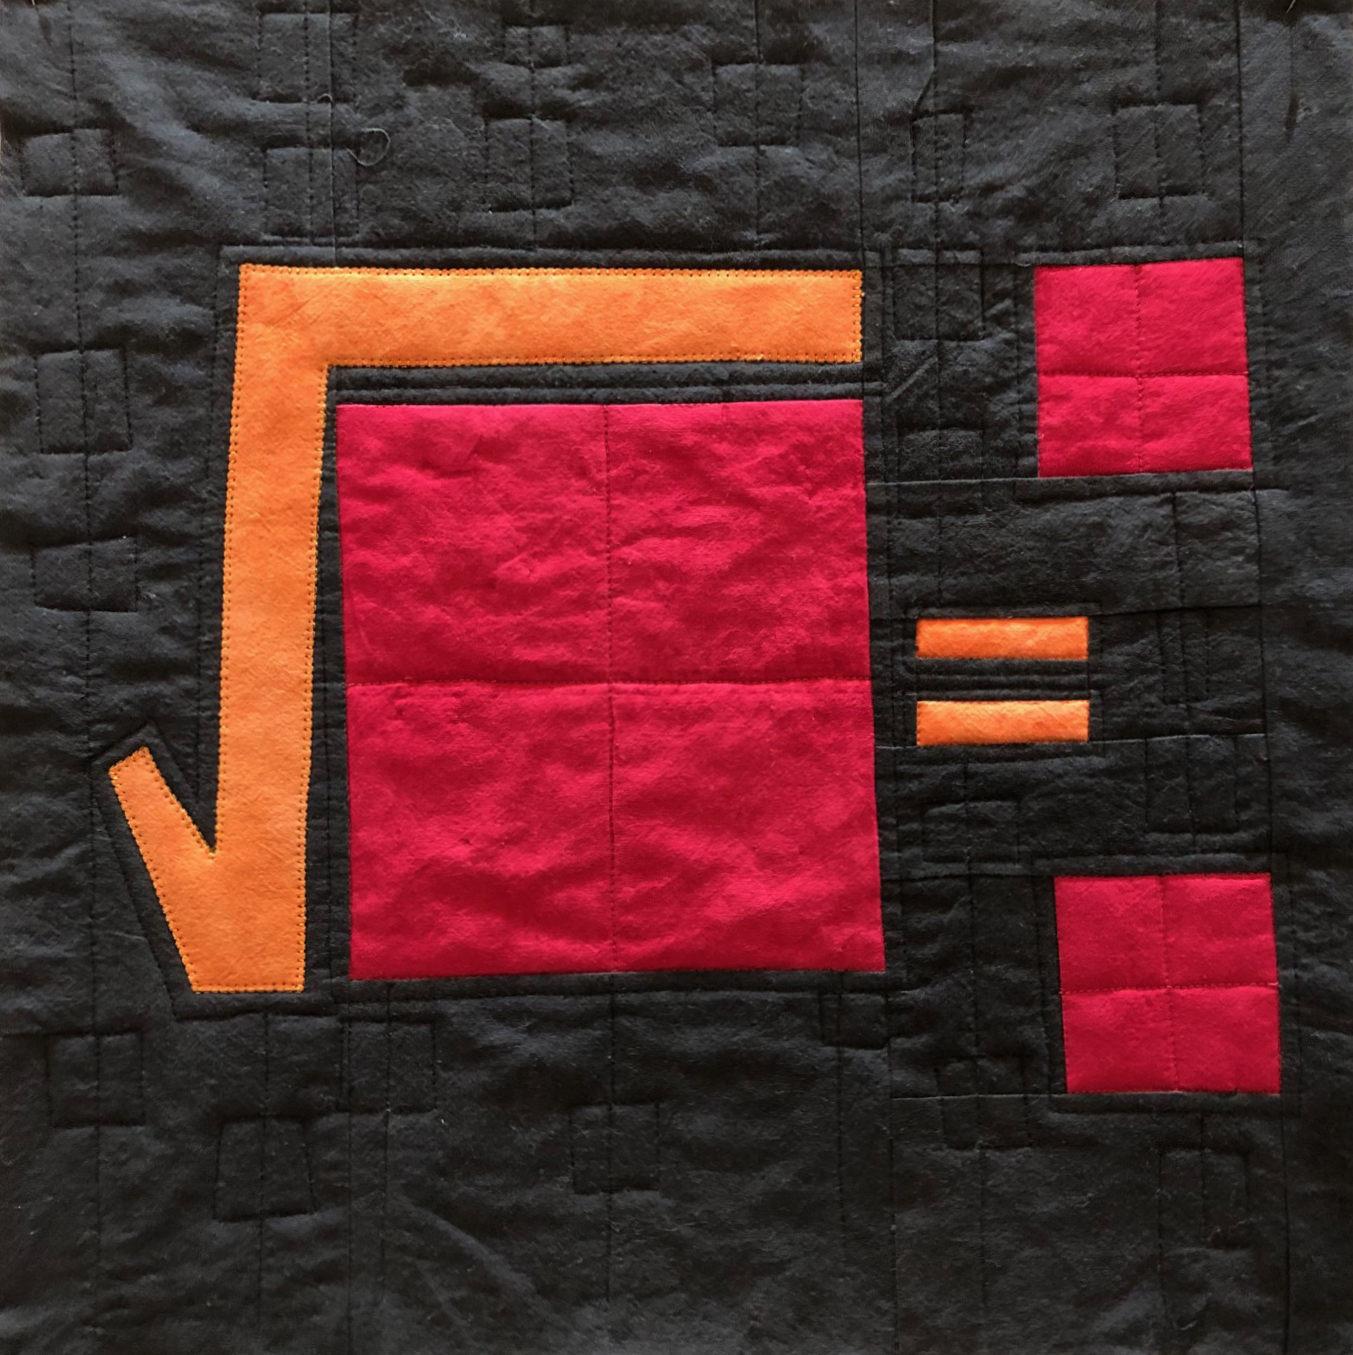 Square Root  By Susan Slesinger  Uses InvisaFil™, Splendor™ (rayon) and Spagetti™ (12 wt cotton thread).